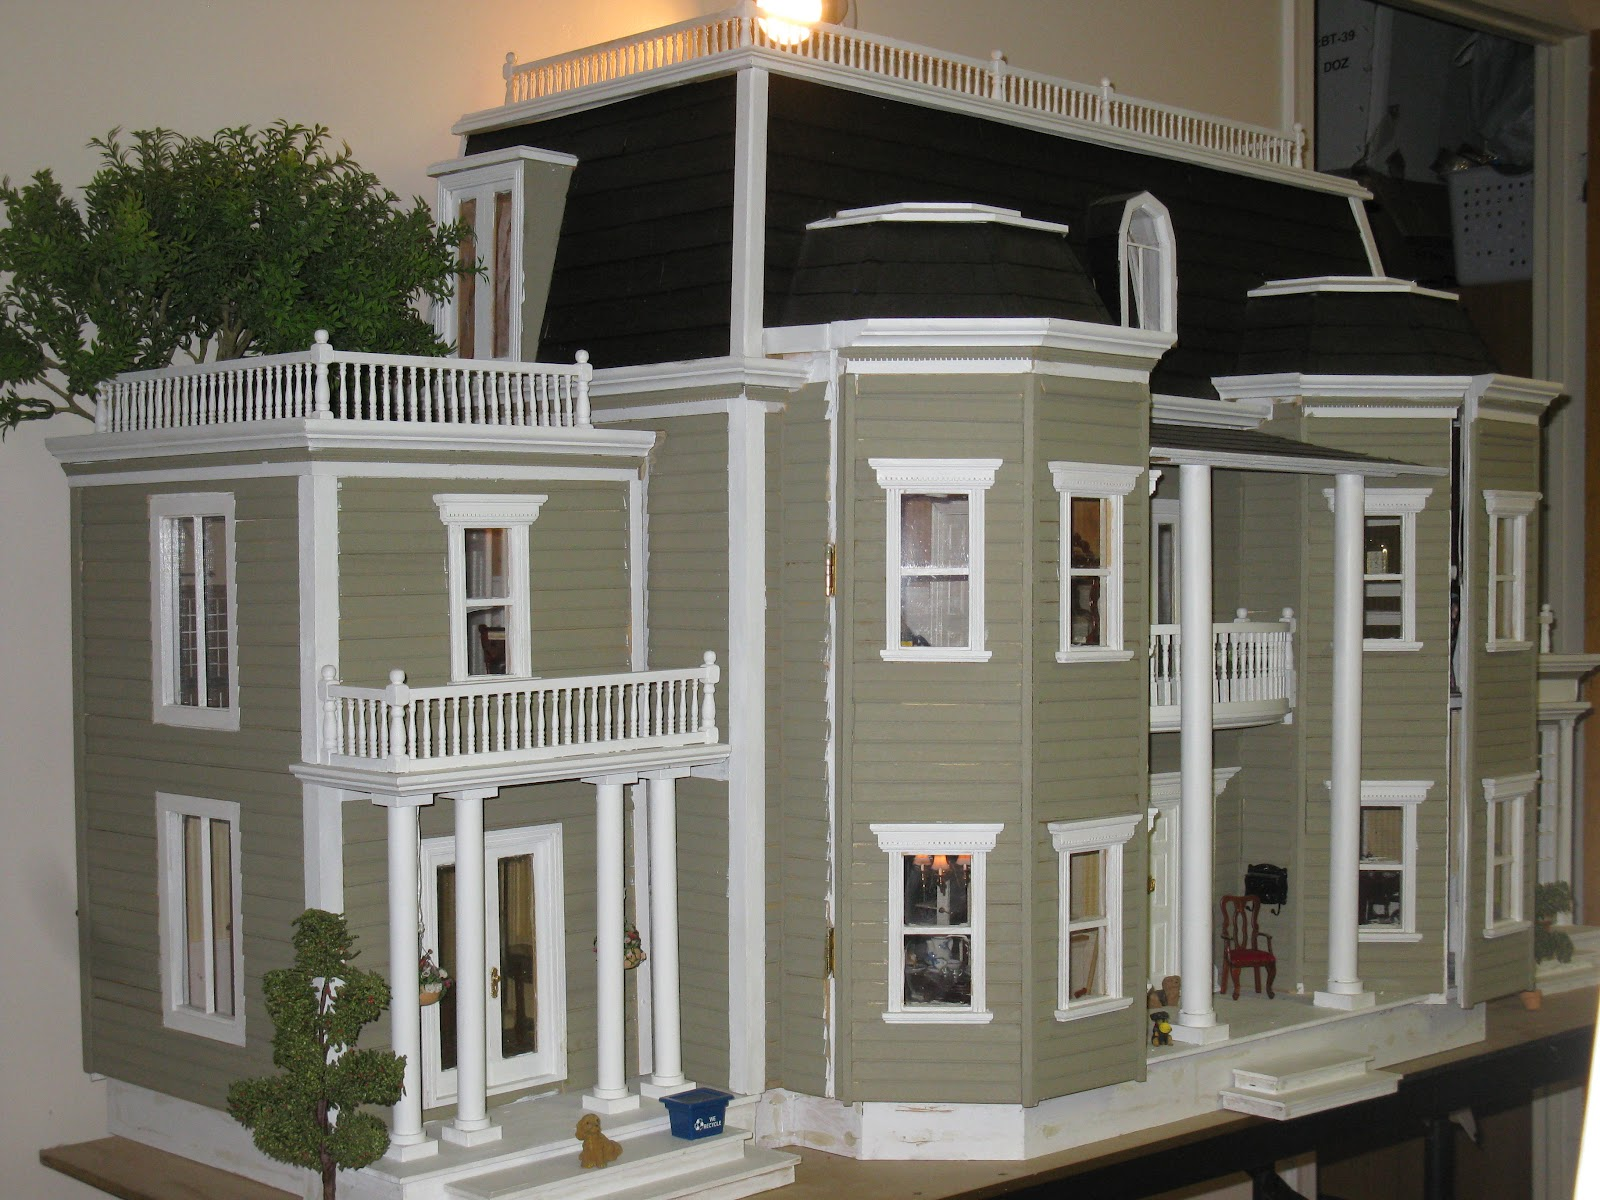 Late Victorian English Manor Dollhouse: 1/12 Miniature from Scratch: Boy's Bedroom and past projects